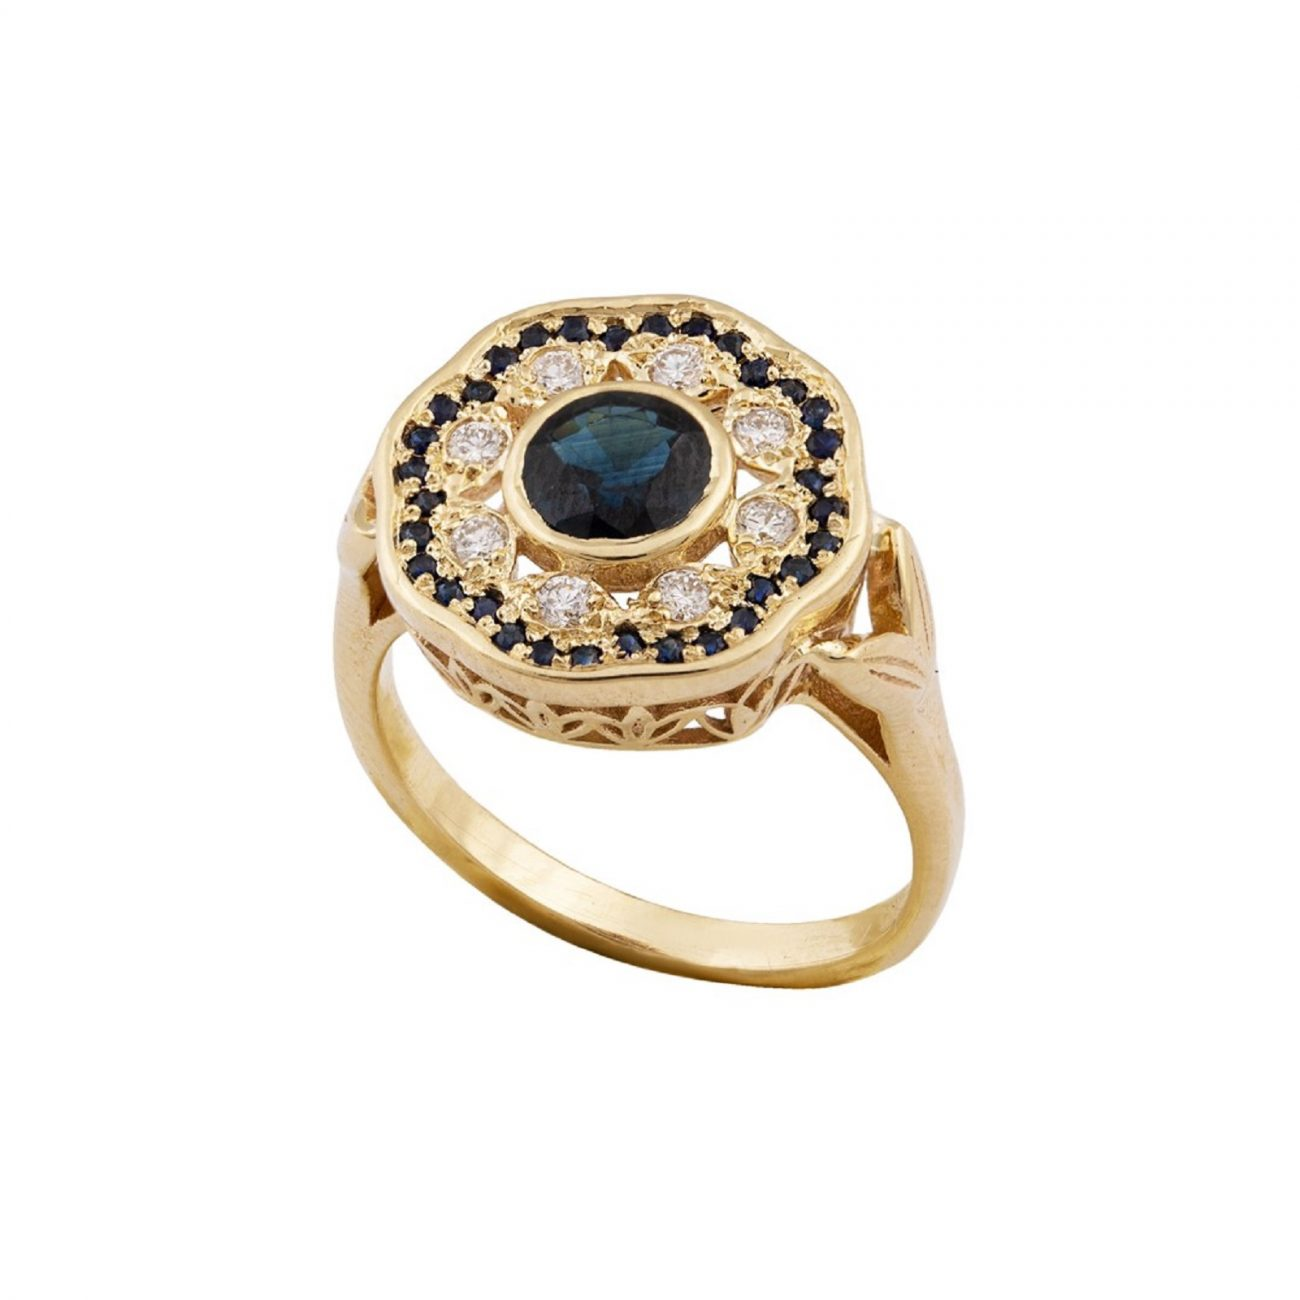 TCHELET YELLOW GOLD RING